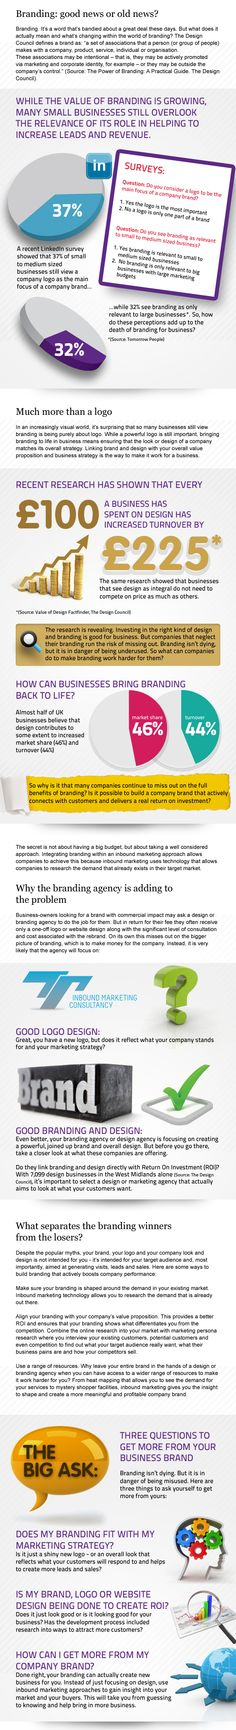 #Branding: Good News or Old News. What is branding and why does it matter #digitalmarketing